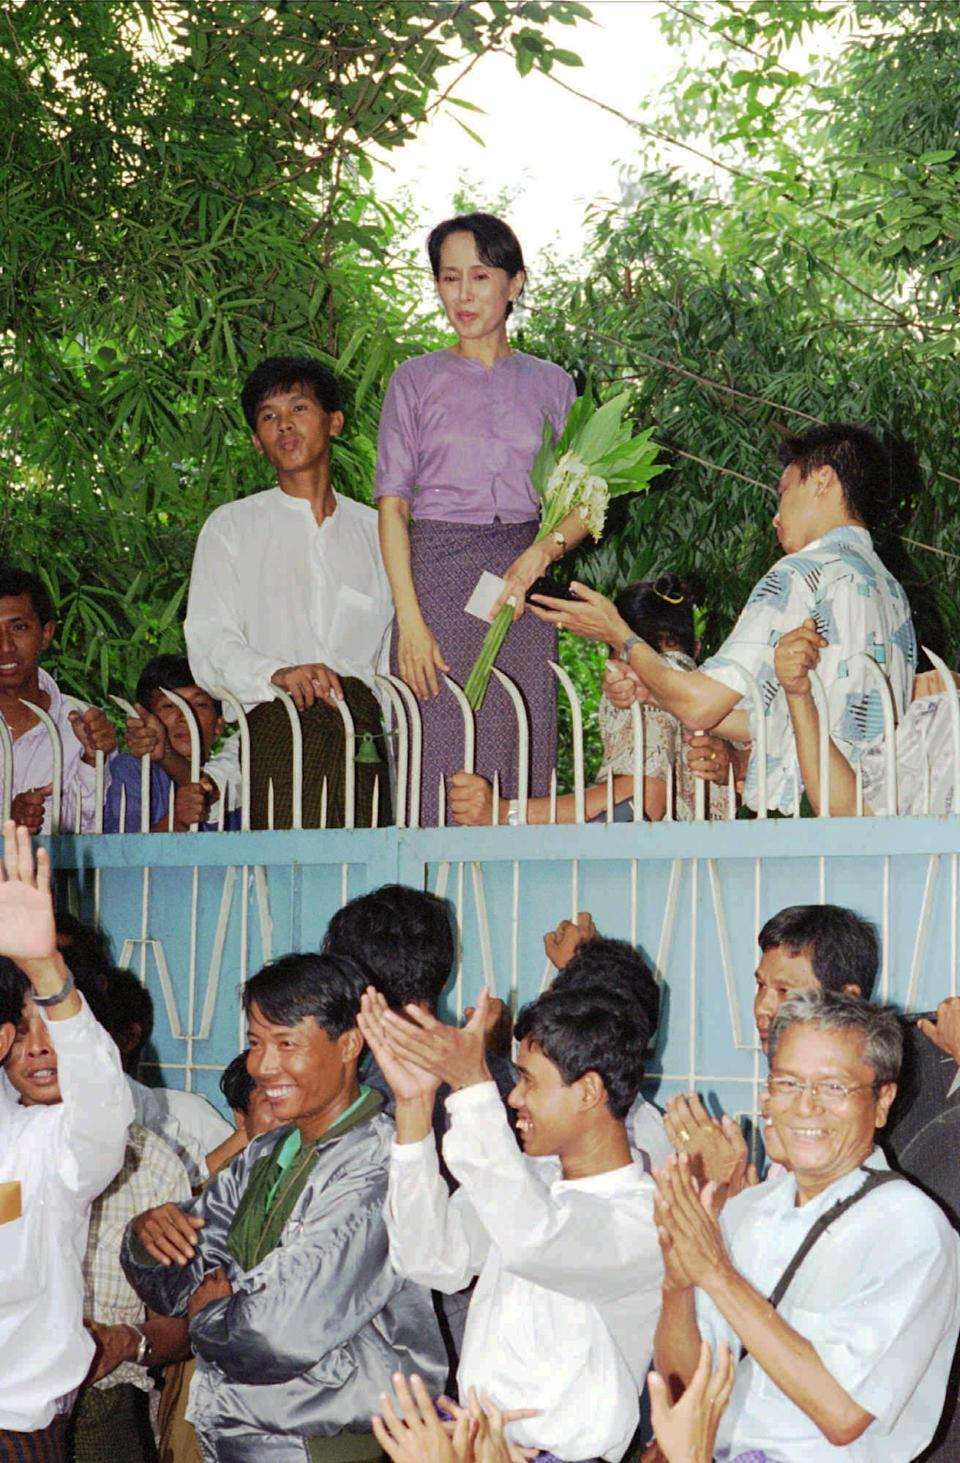 FILE - In this Tuesday, July 11, 1995 file photo, Aung San Suu Kyi stands behind her gate to greet a crowd of about 1,000 people who came to see her in Rangoon, Burma. (AP Photo/Stuart Isett)